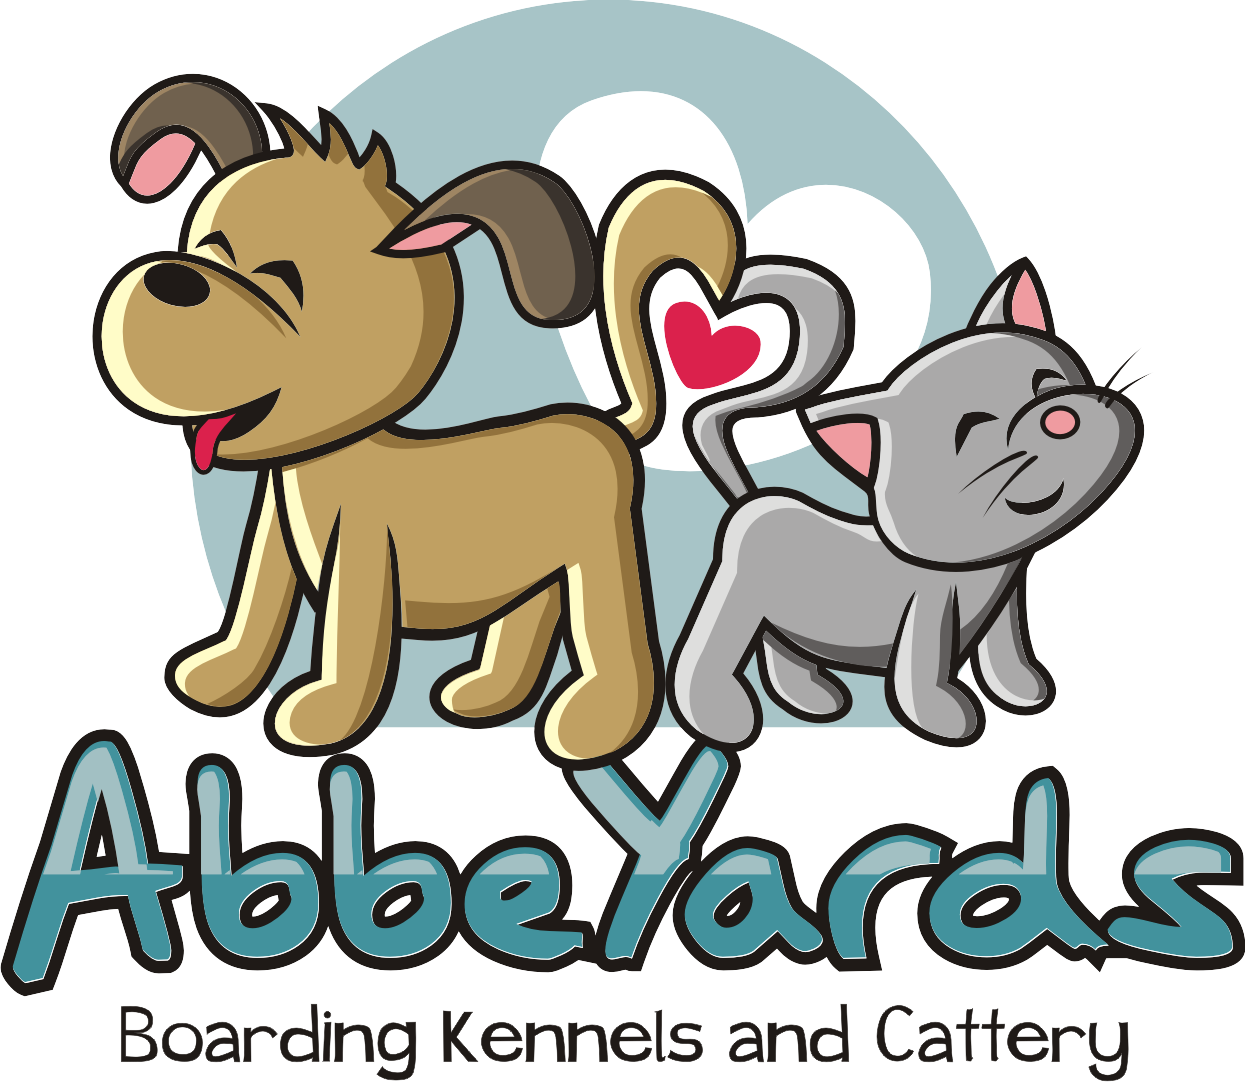 Create a Dog and Cat Logo for Abbeyards Boarding Kennels and Cattery